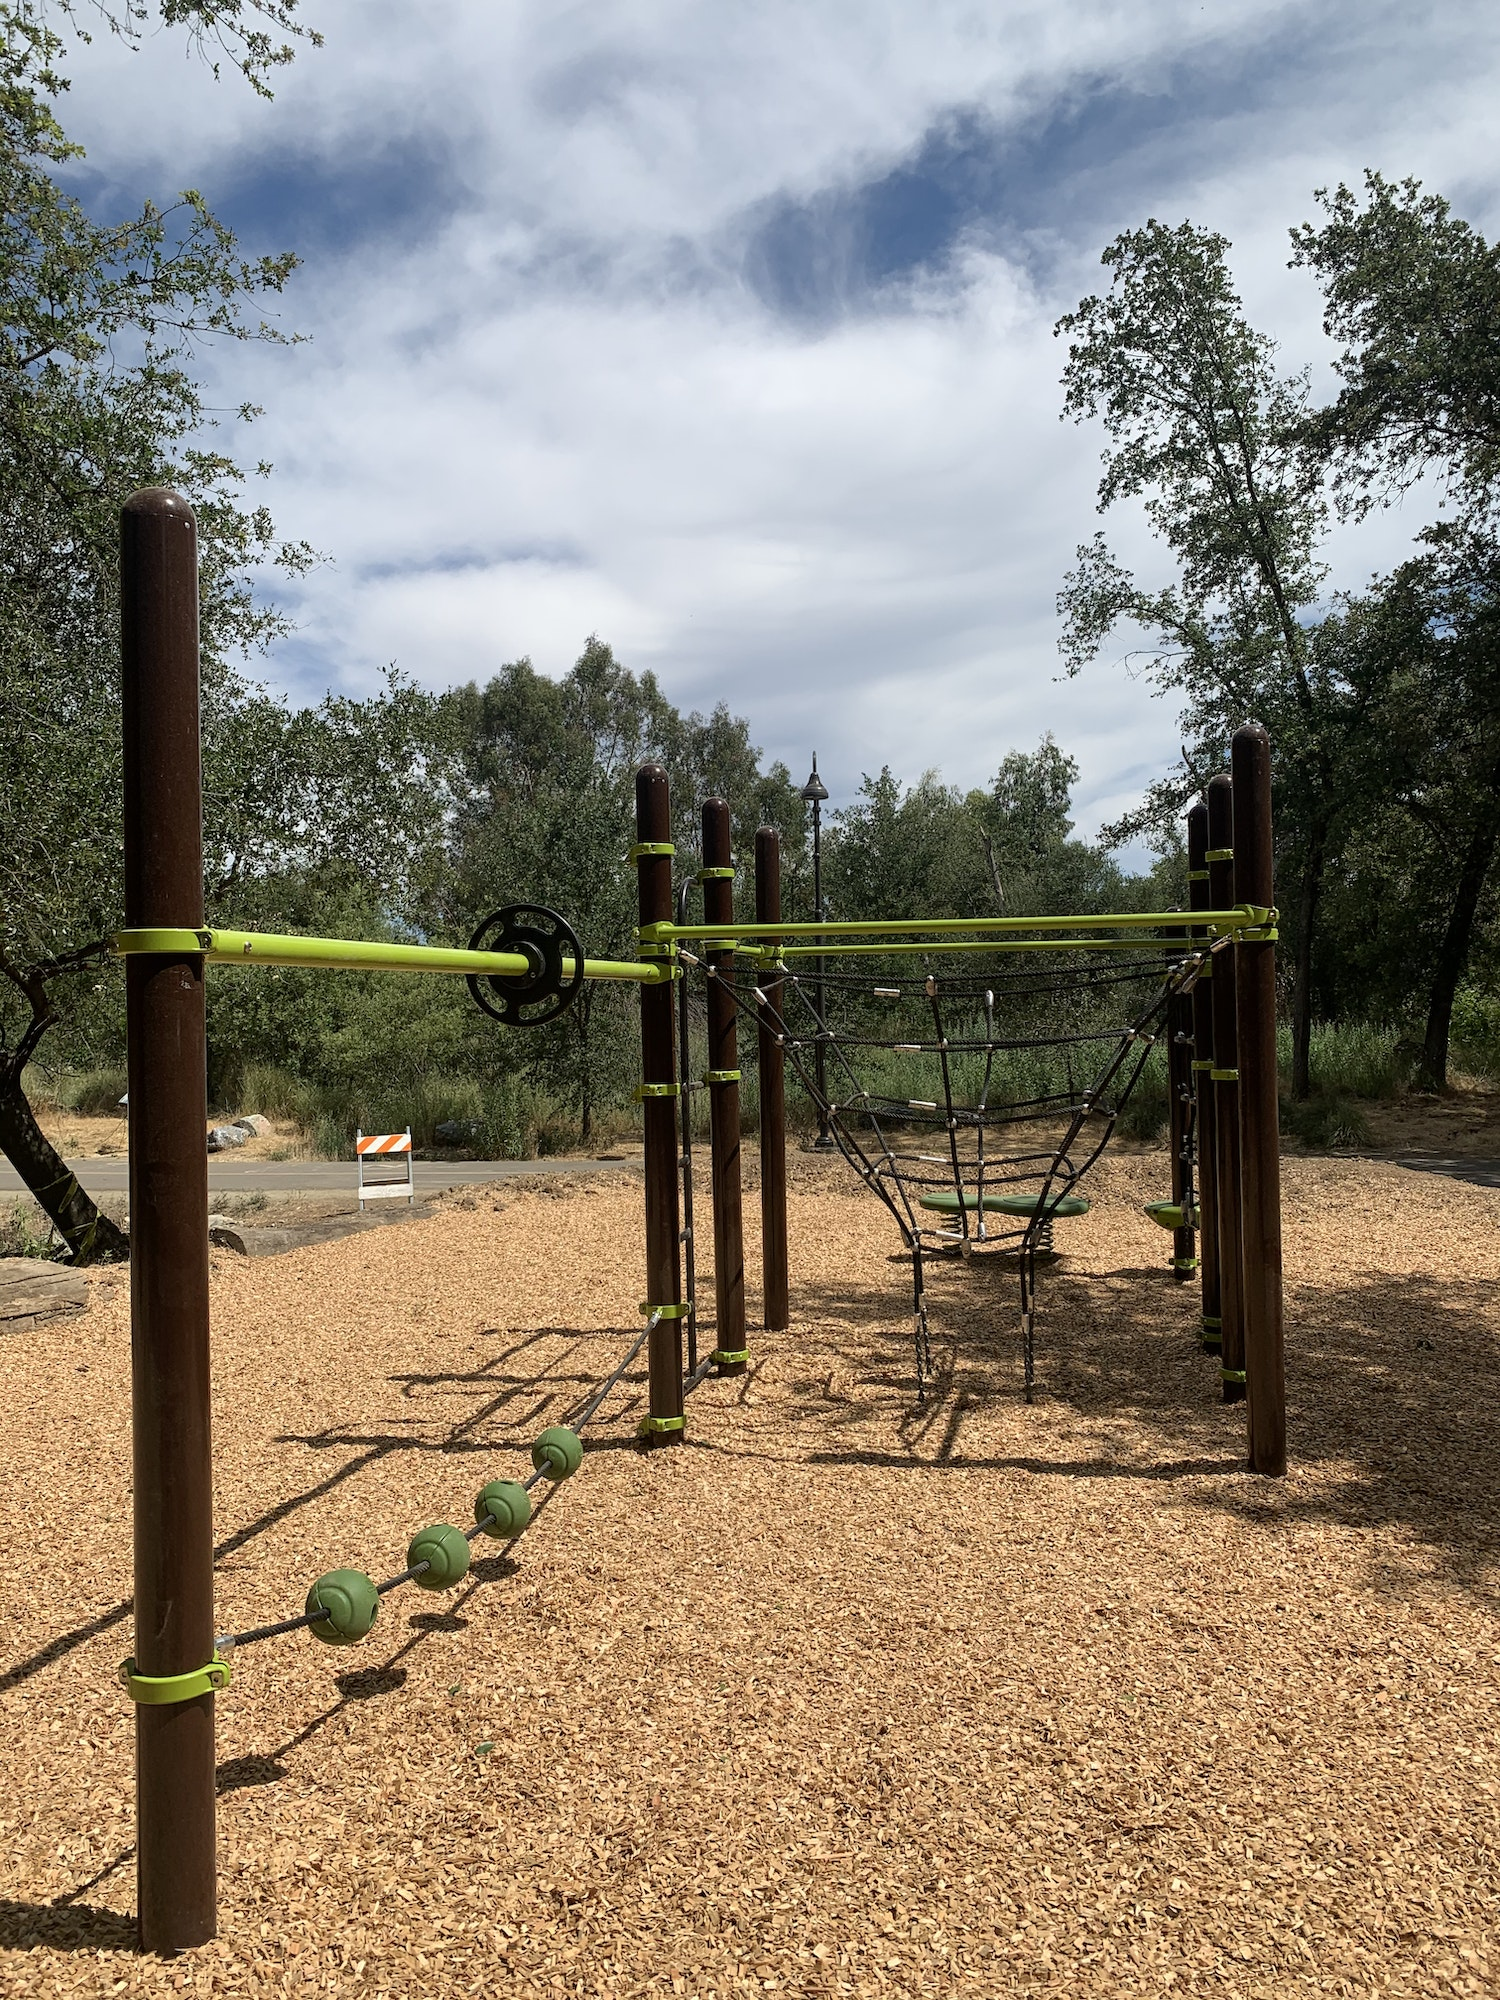 May contain: gate, play area, and playground